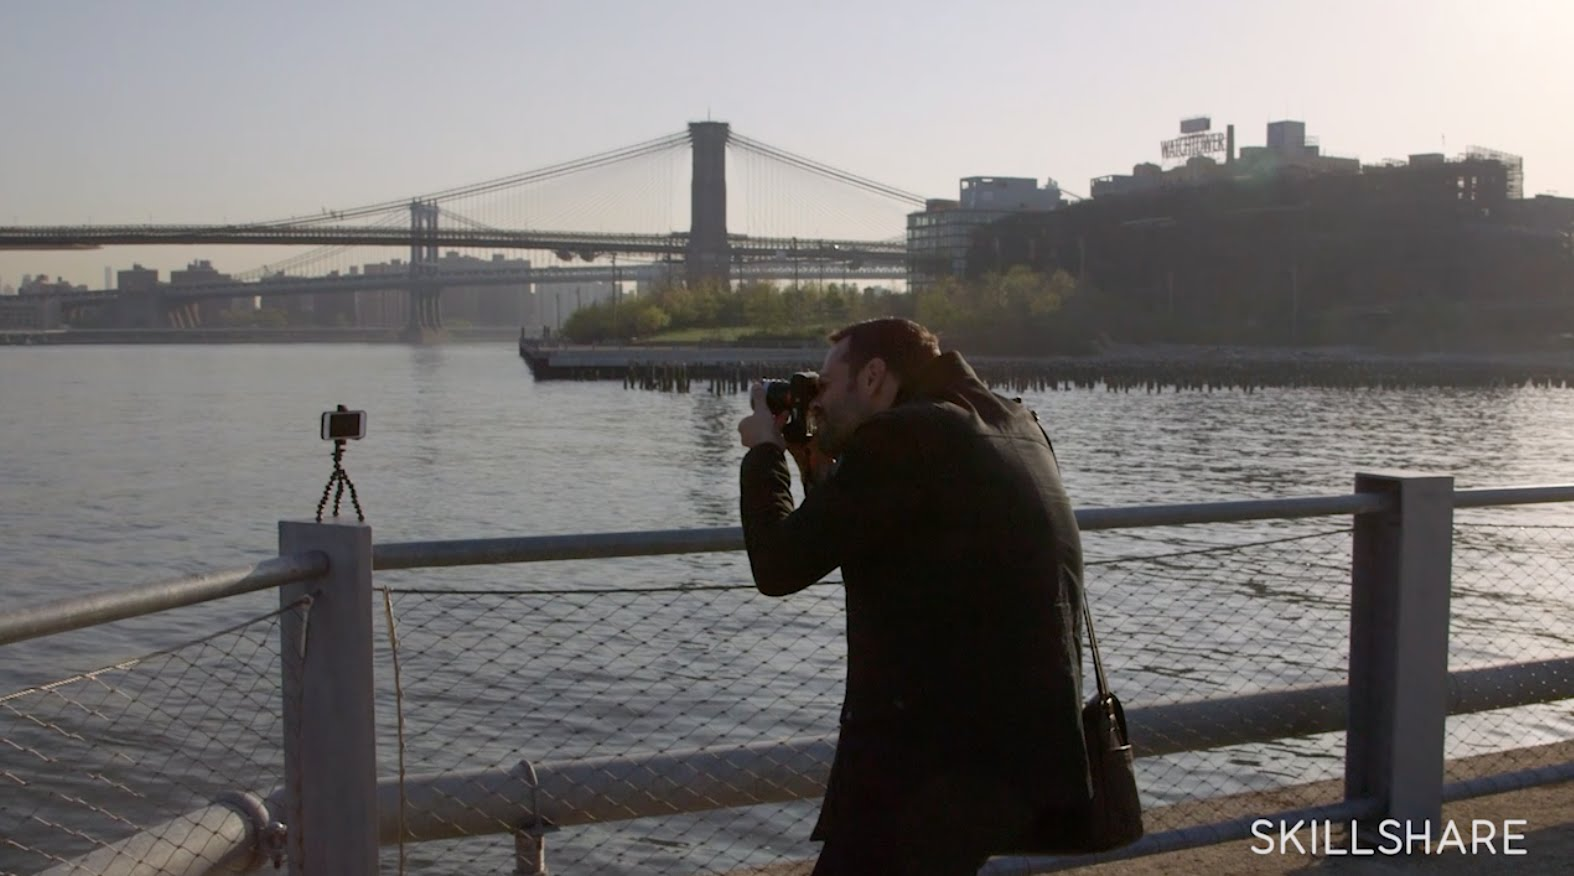 Photography classes on the internet sites